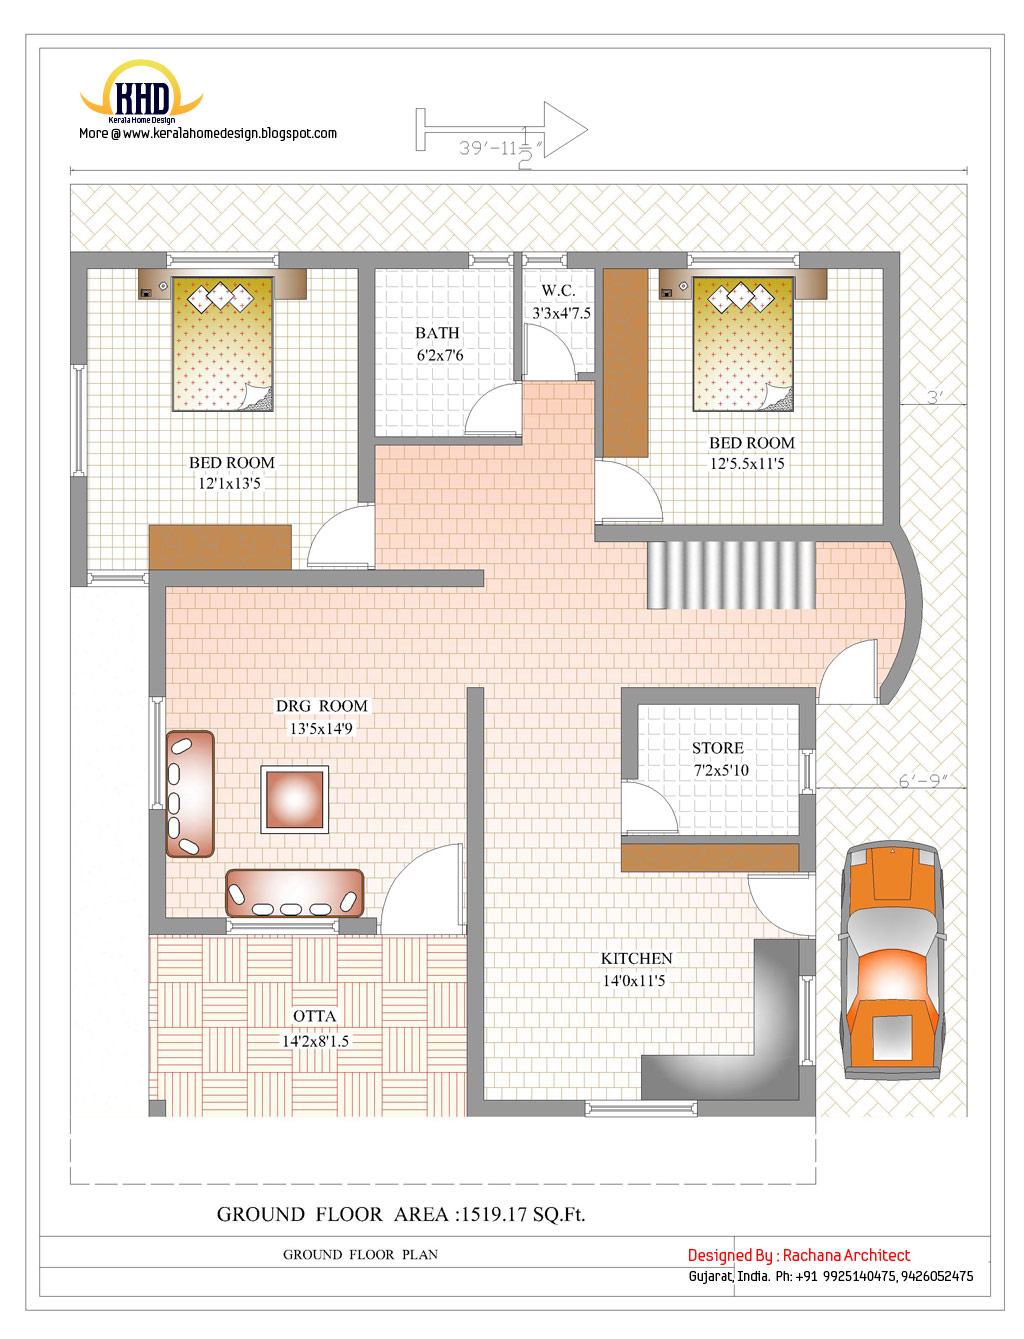 Stunning 500 Sq. Ft. House Plans Duplex with Garage 1024 x 1339 · 287 kB · jpeg